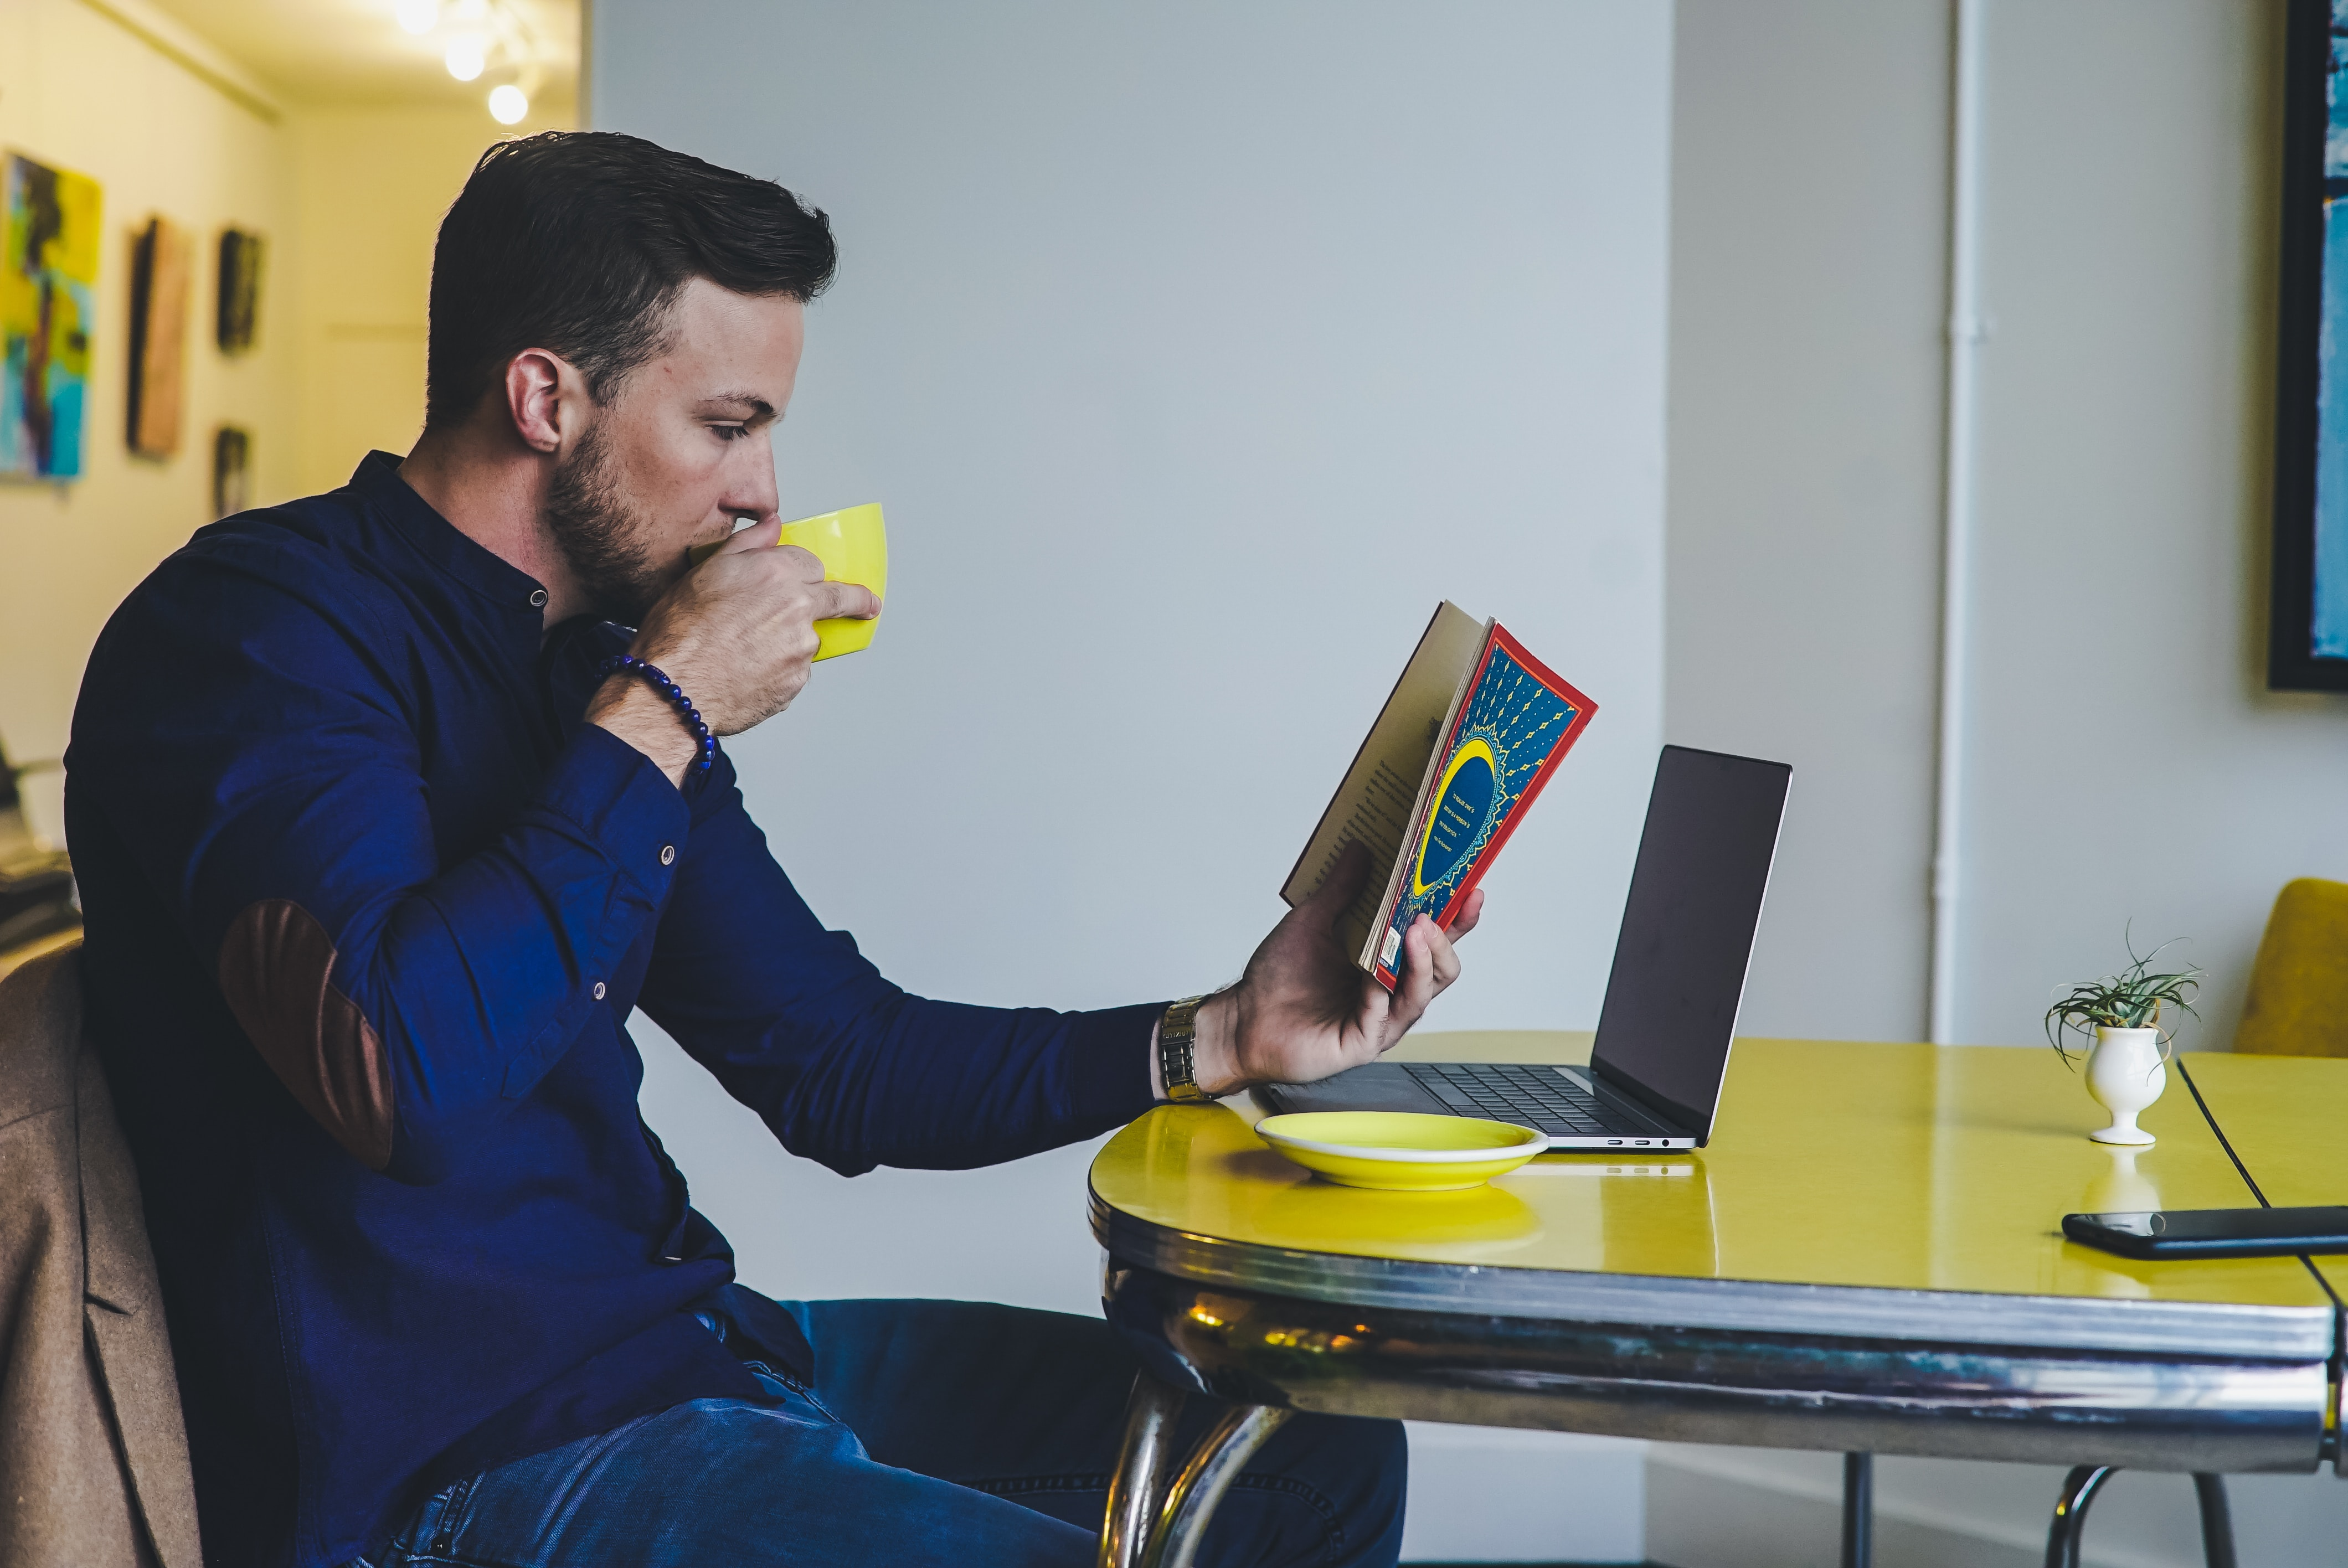 Man reading a book sipping coffee